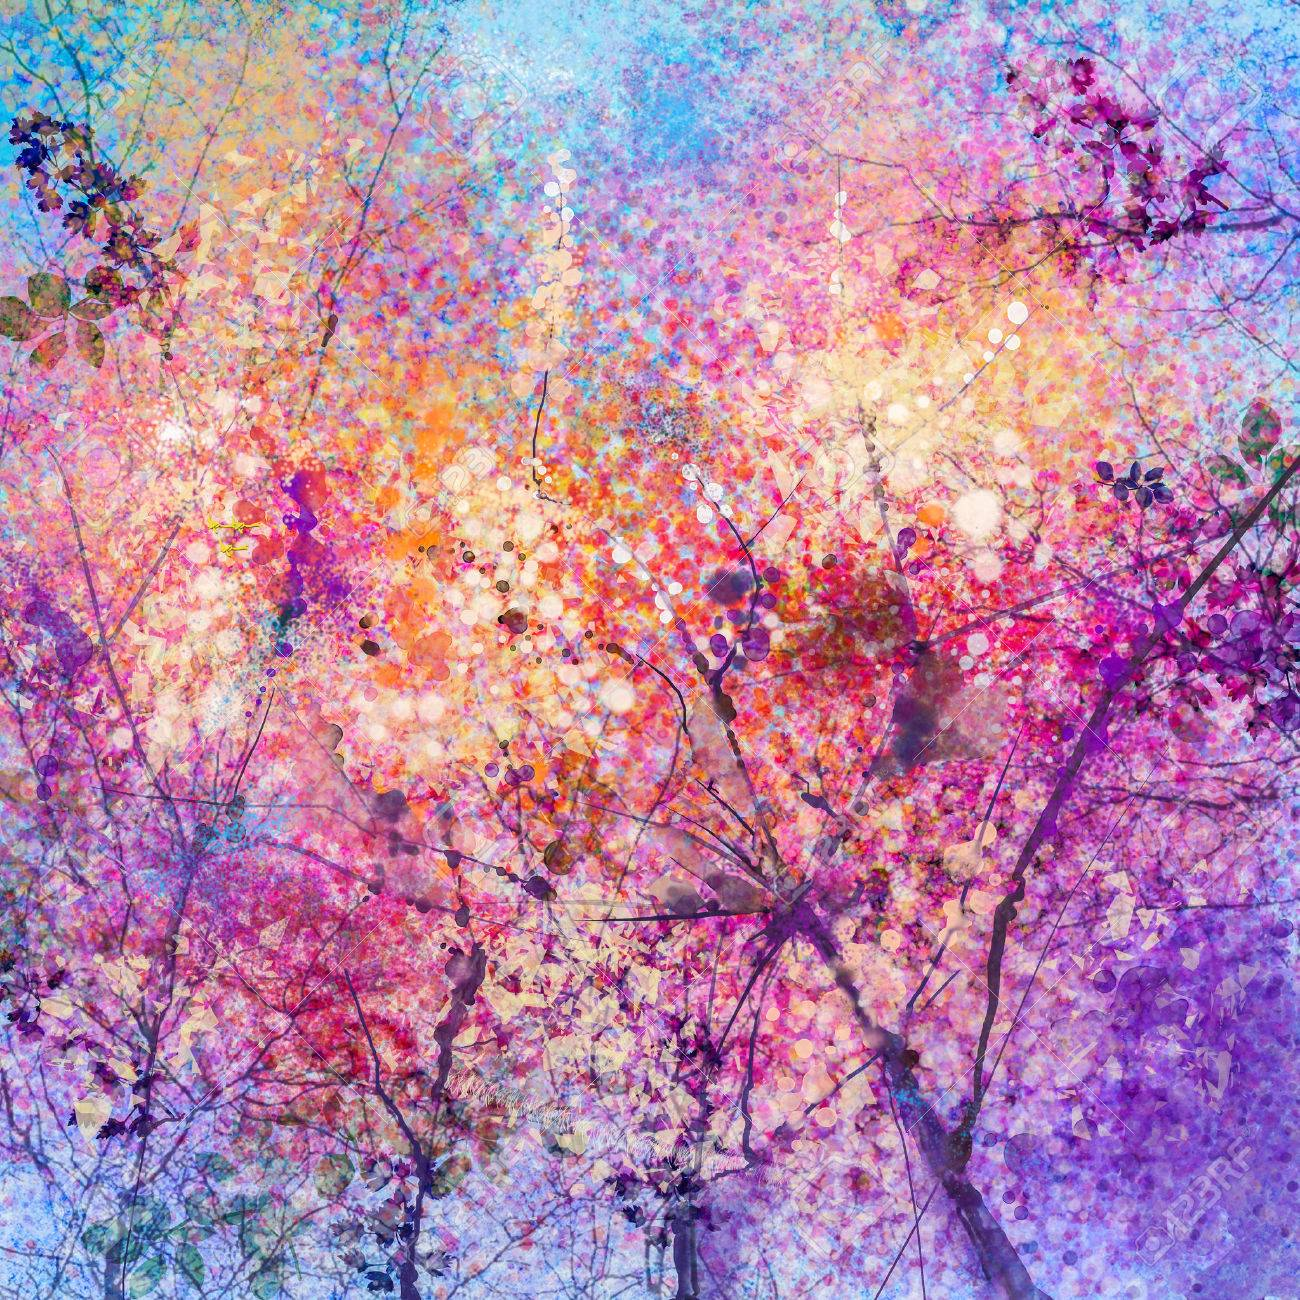 Abstract watercolor painting of spring flowers, nature background. Cherry blossom, pink flowers with blue sky. Hand painted landscape, spring season background - 61621417